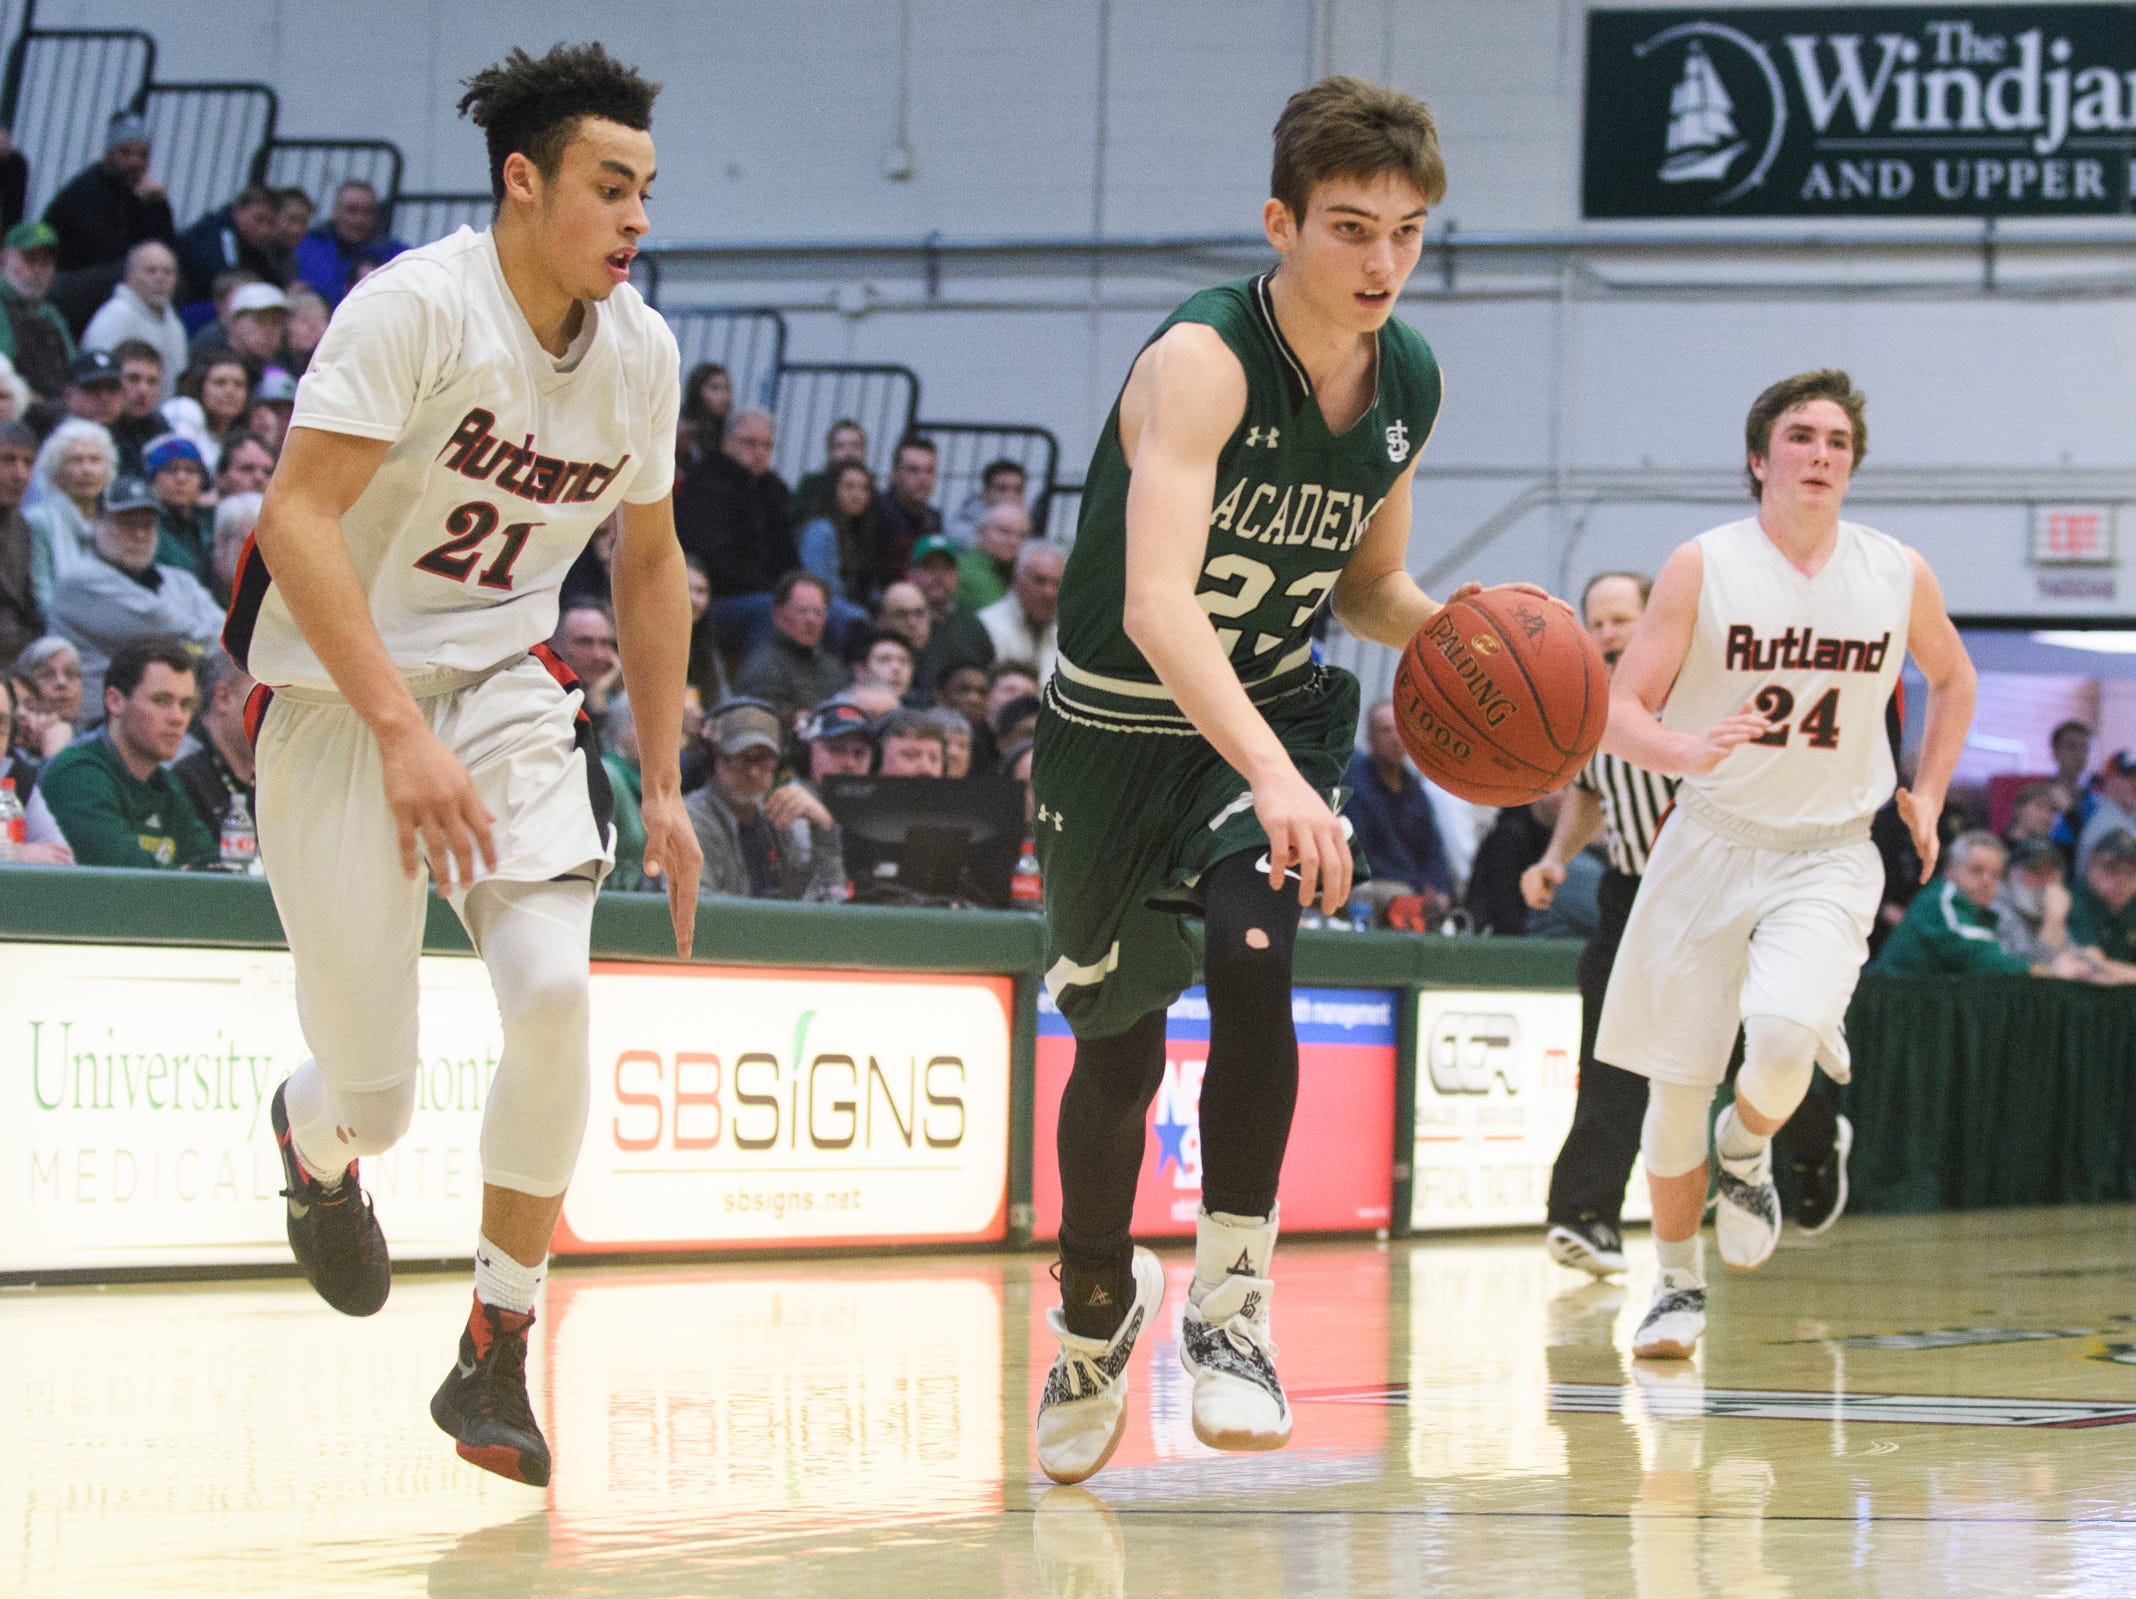 St. Johnsbury's Logan Wendell (23) drives to the hoop past Rutland's Jamison Evans (21) during the DI boys basketball championship game between the St. Johnsbury Hilltoppers and the Rutland Raiders at Patrick Gym on Sunday afternoon March 17, 2019 in Burlington, Vermont.